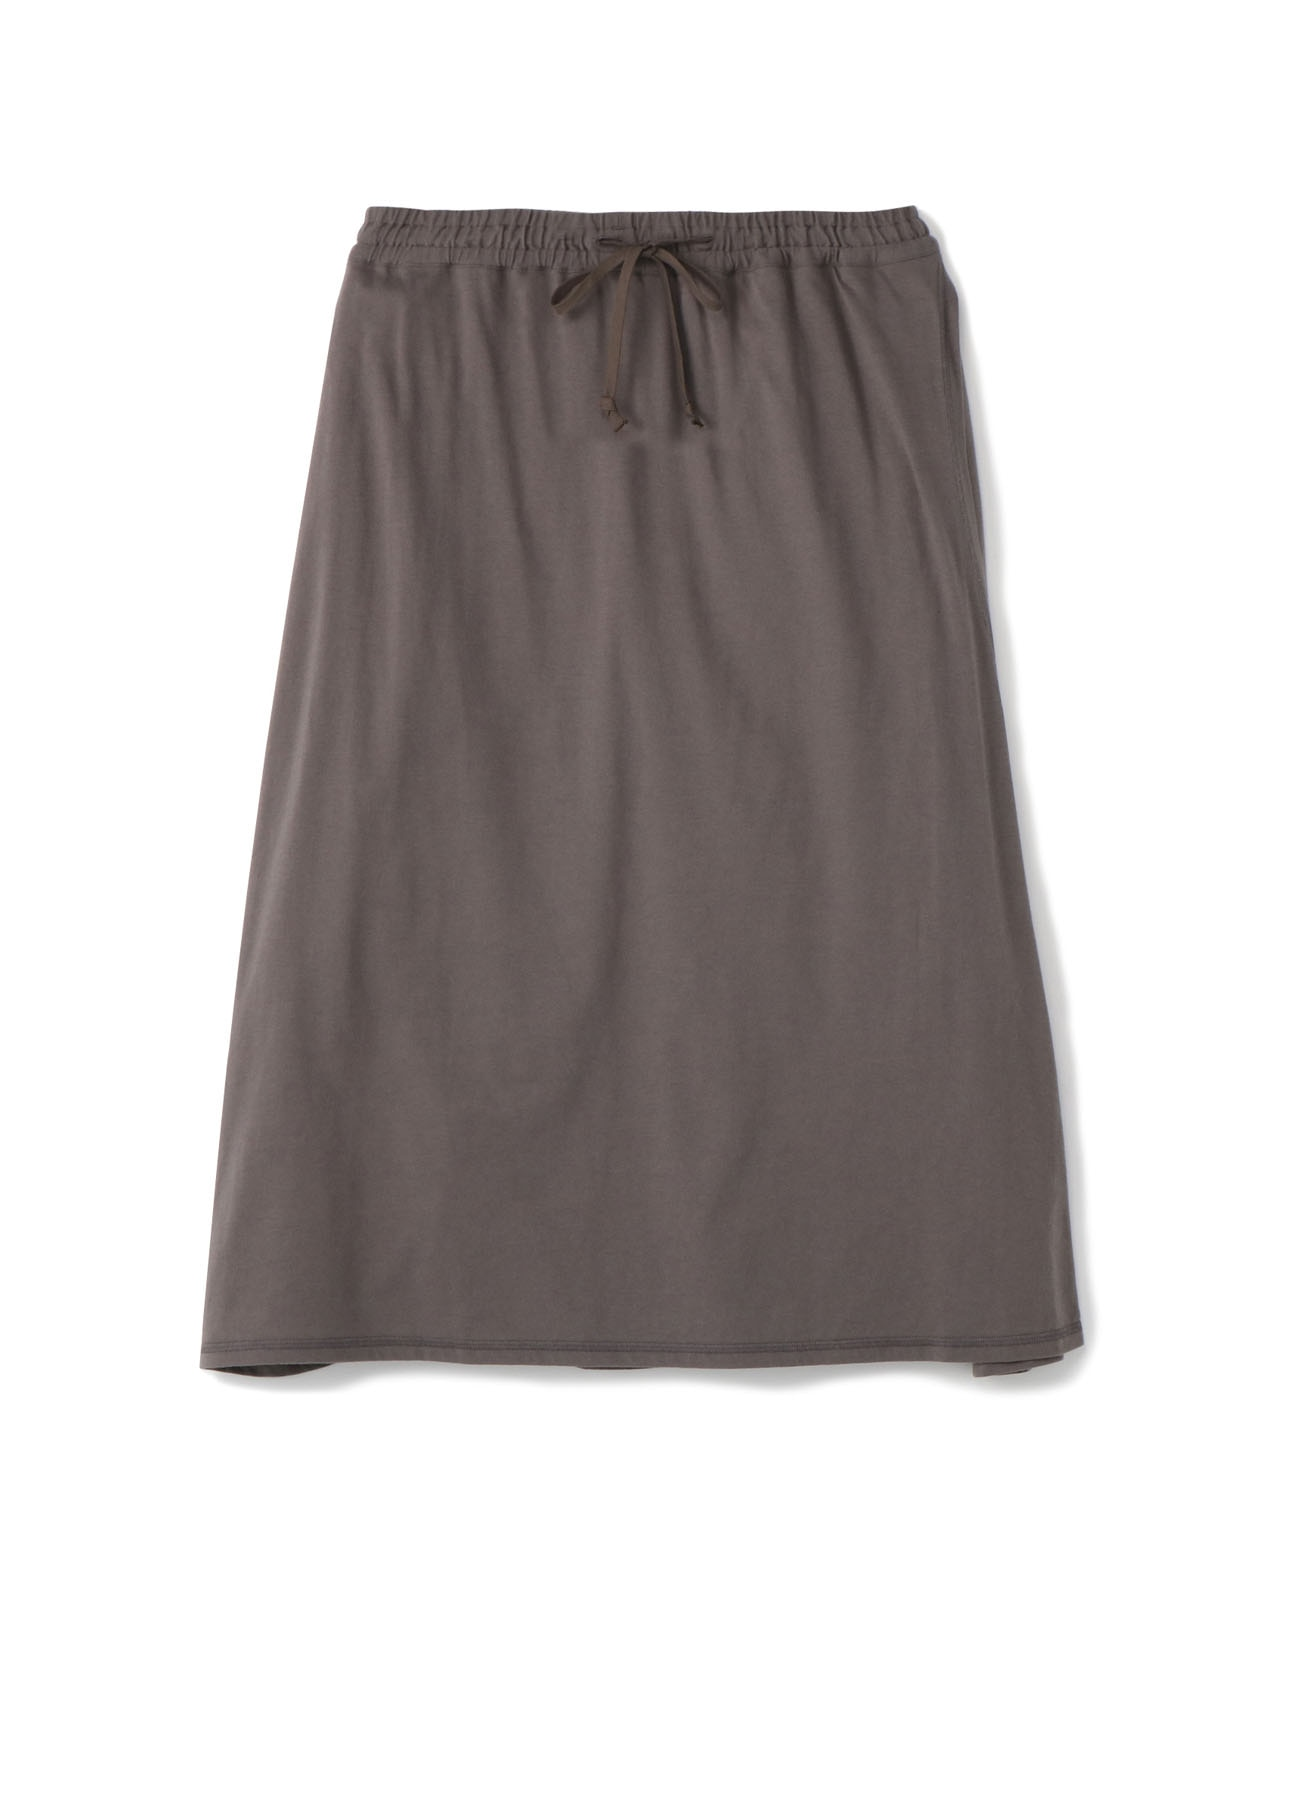 40/2Cotton Jersey Inner pants layered skirt